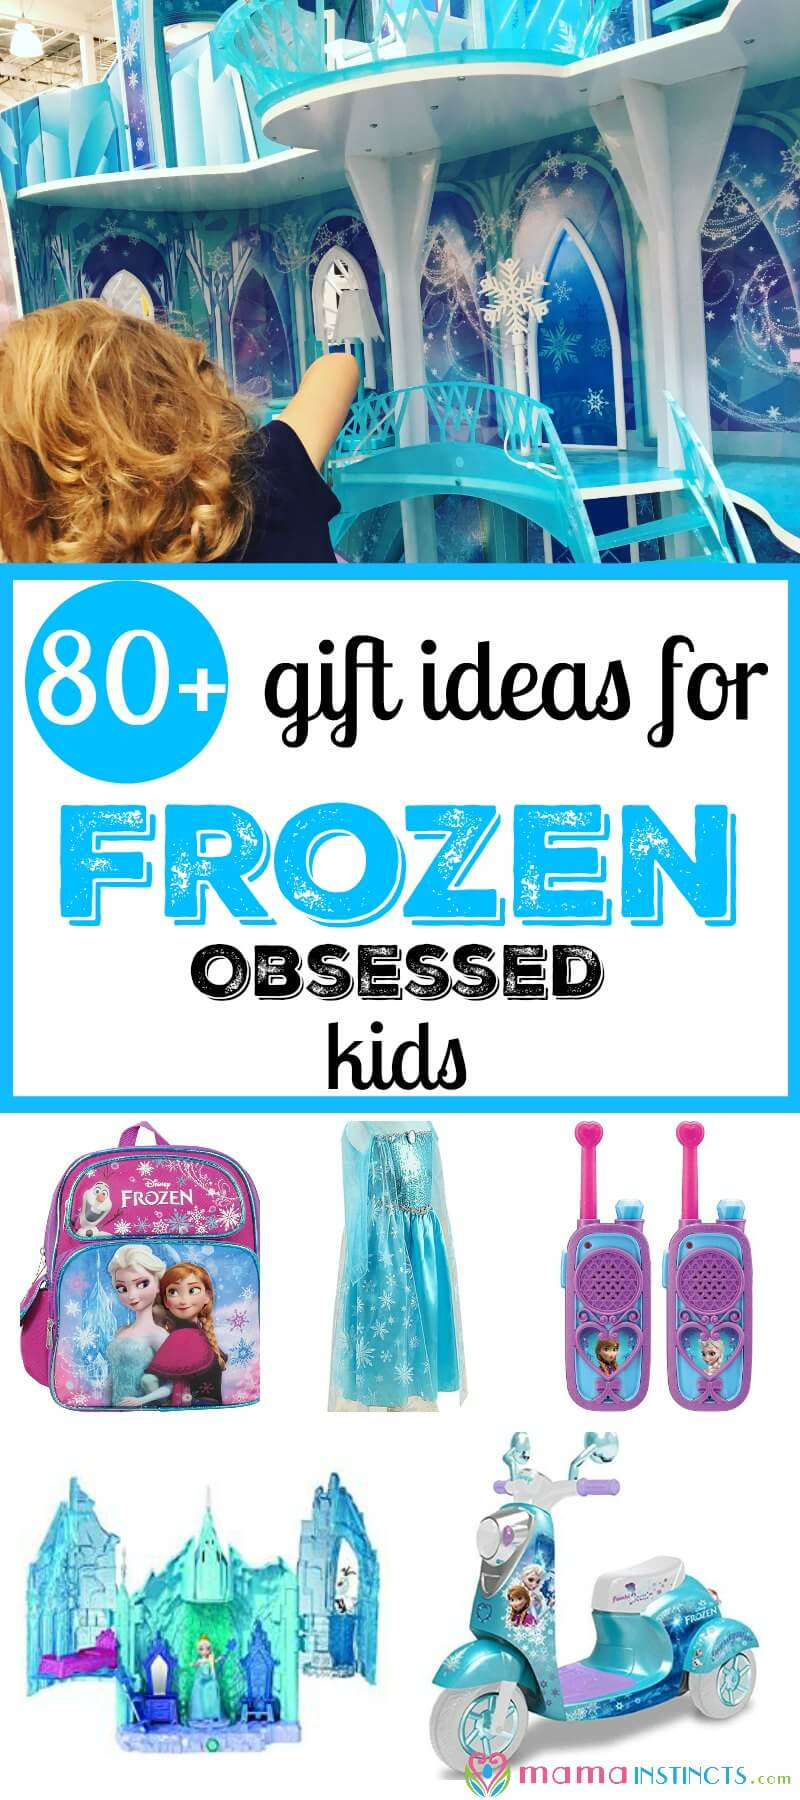 Do you have a Frozen obsessed kid? Then you have to look at these awesome 80+ Frozen gift ideas for birthdays, Christmas or a special occasion. You'll find from Castles, to furniture and anything you can image. All about Frozen.